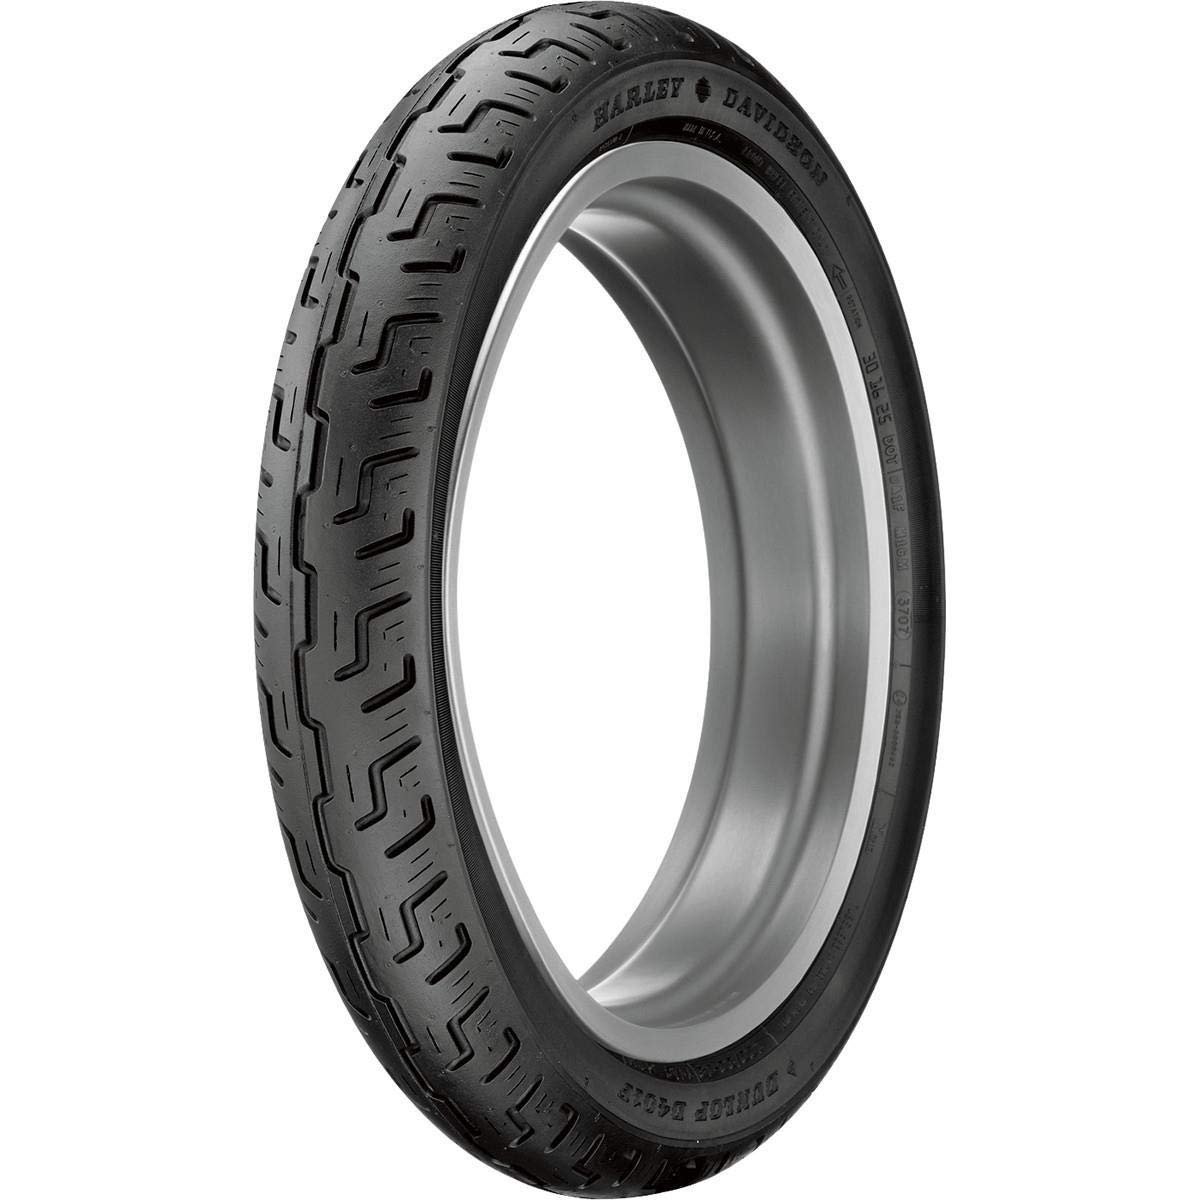 Dunlop D401 Harley Series Front Tire 100/90-19 TL 4333046450